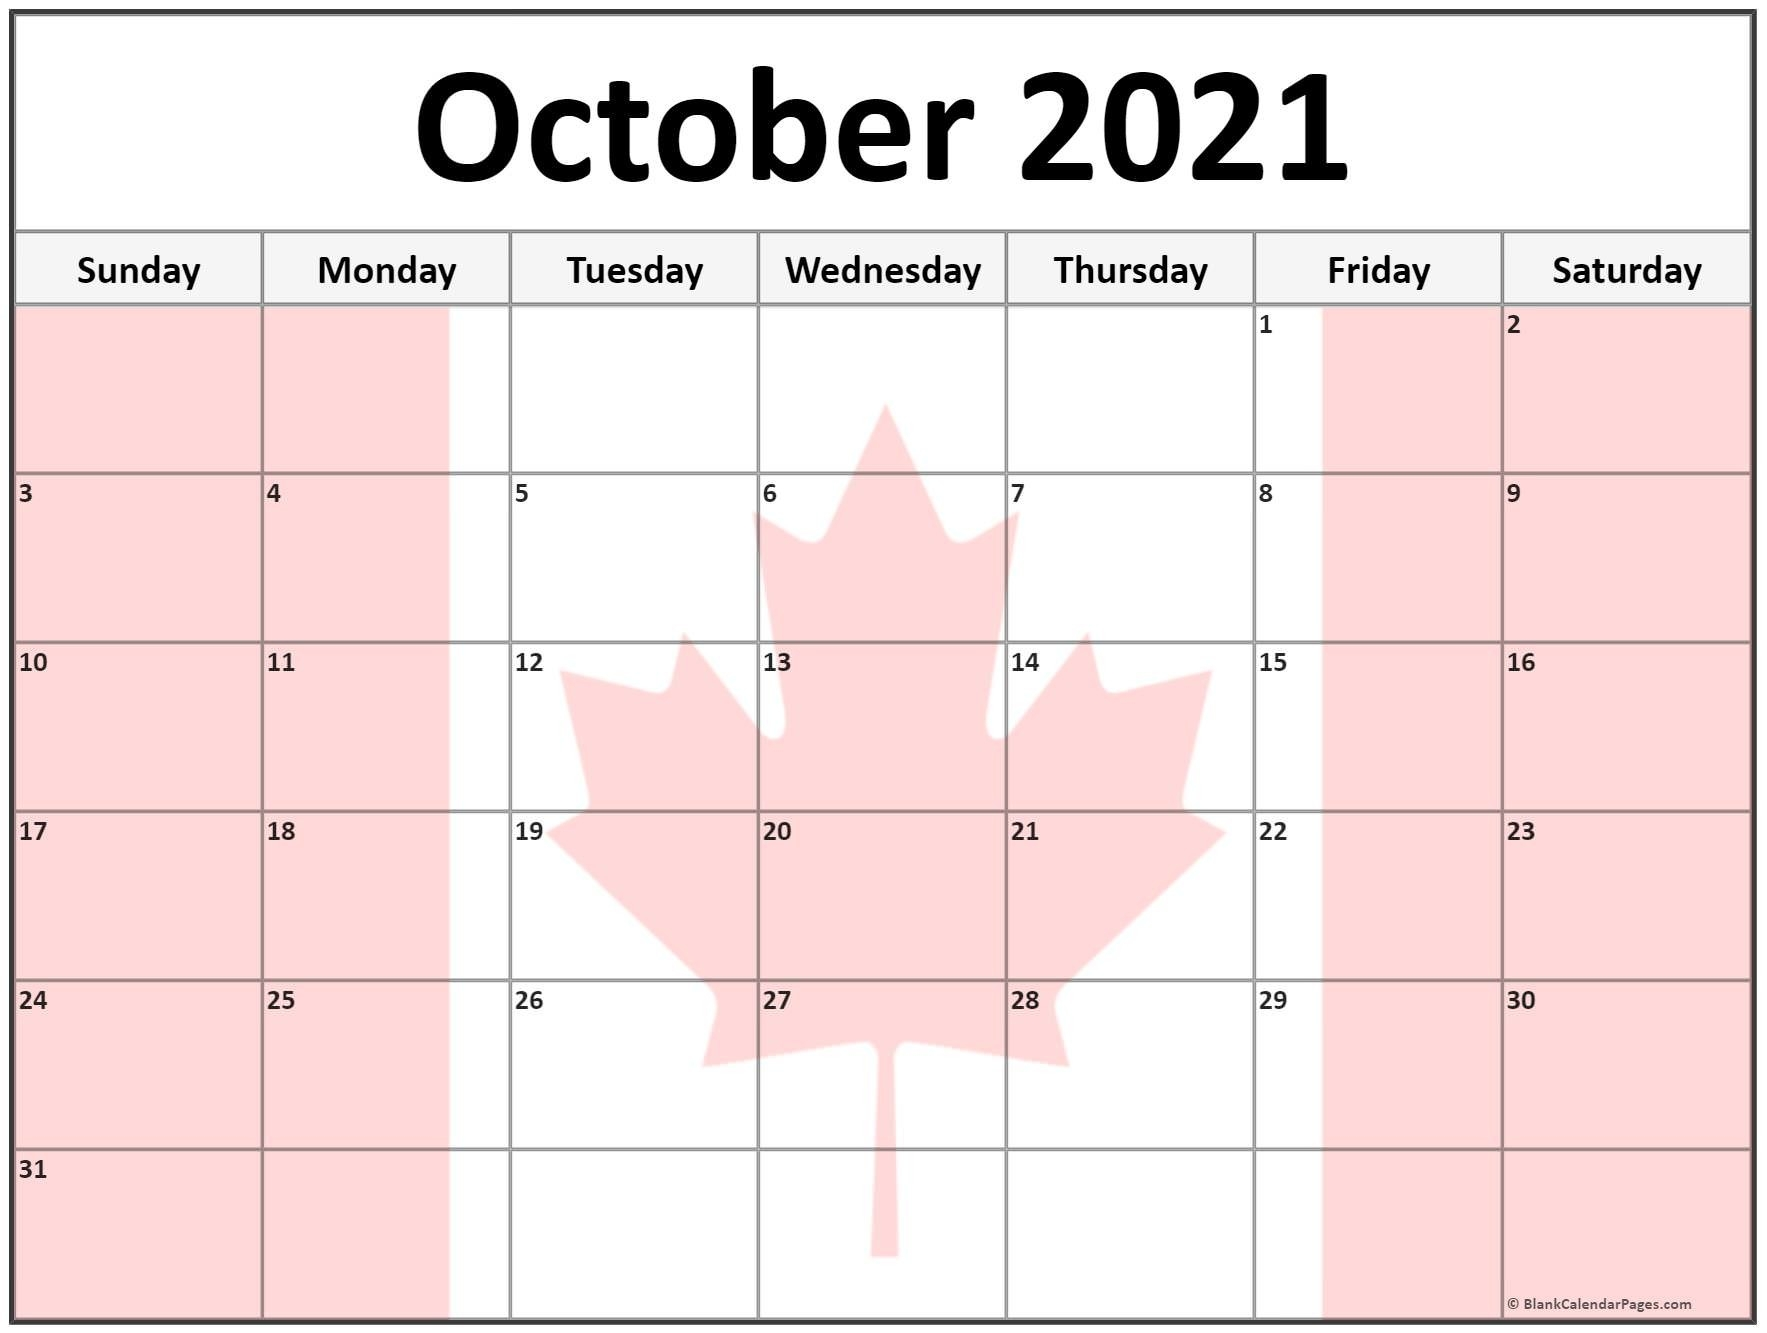 Collection Of October 2021 Photo Calendars With Image Filters.-Monthly Calendar Printable October 2021